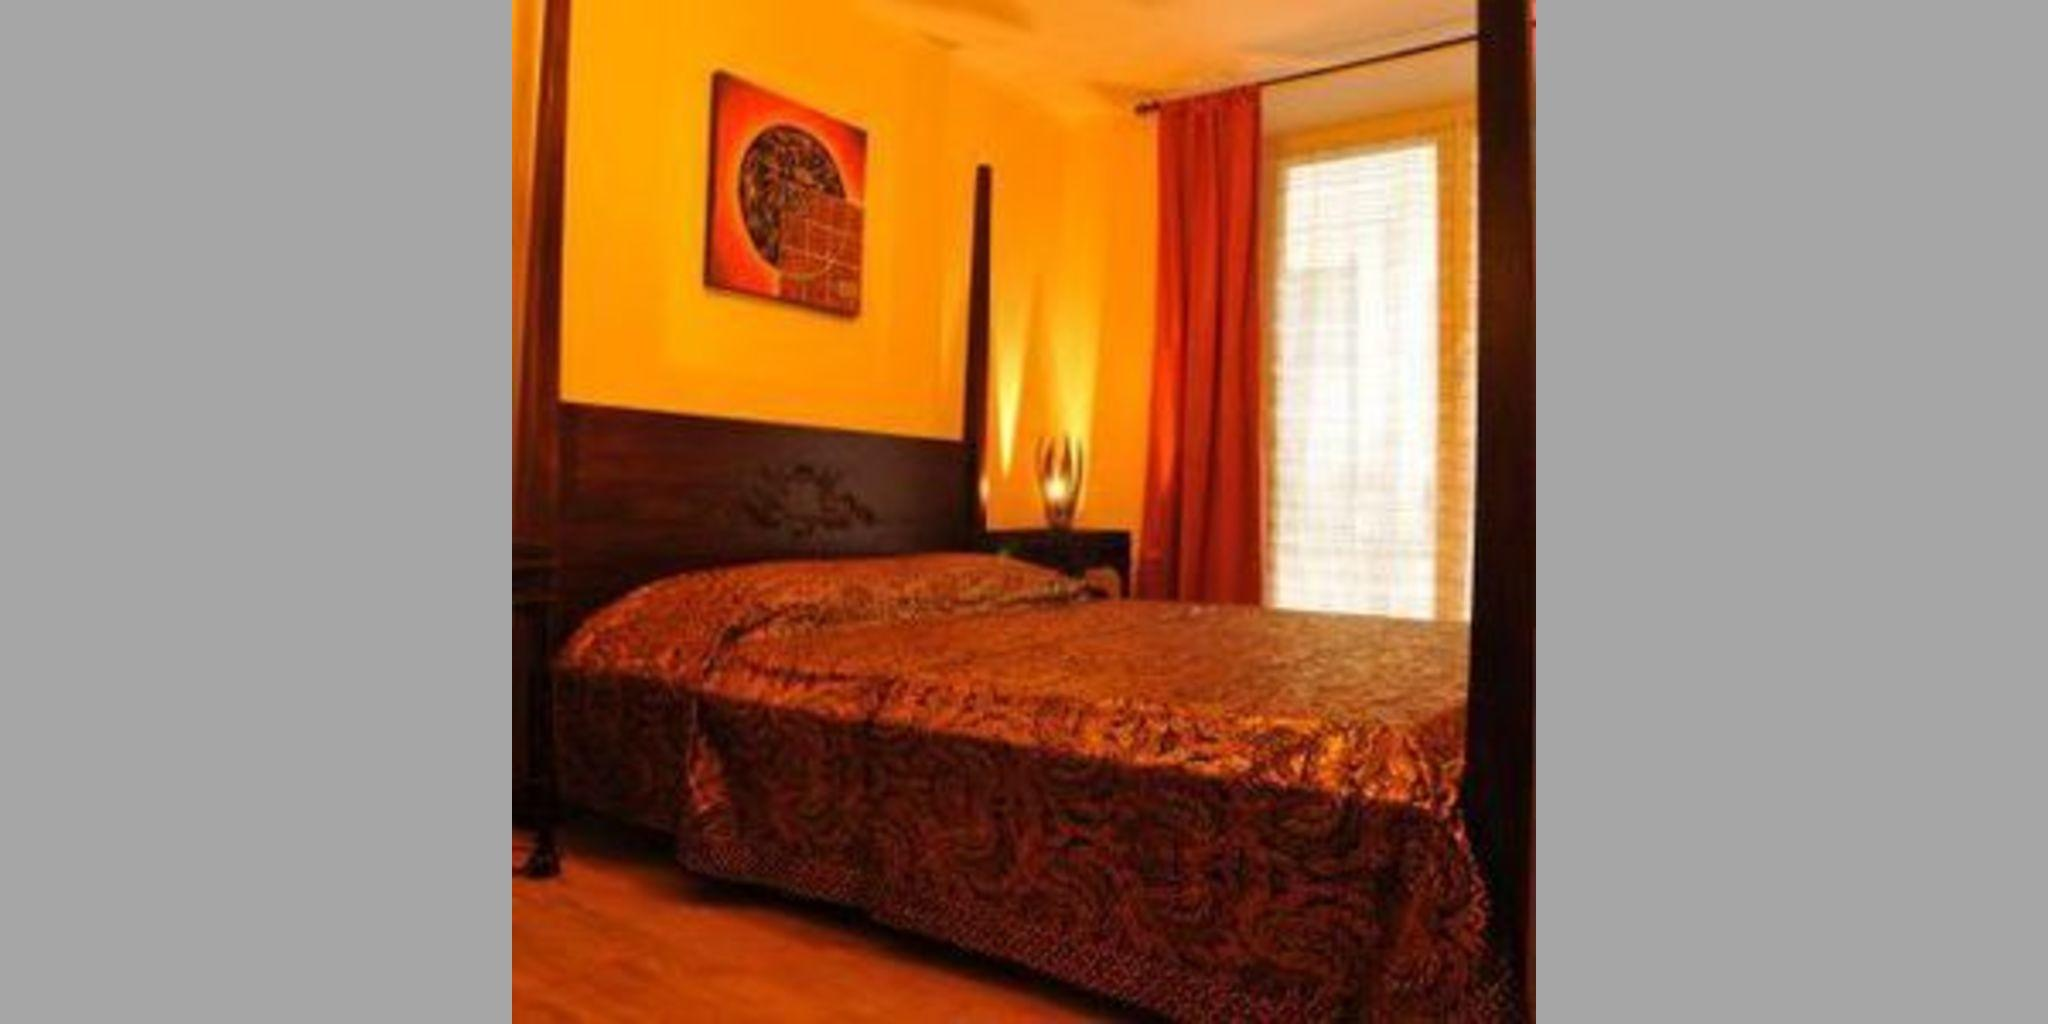 Bed & Breakfast Genova - B&B Genova_Centro Storico